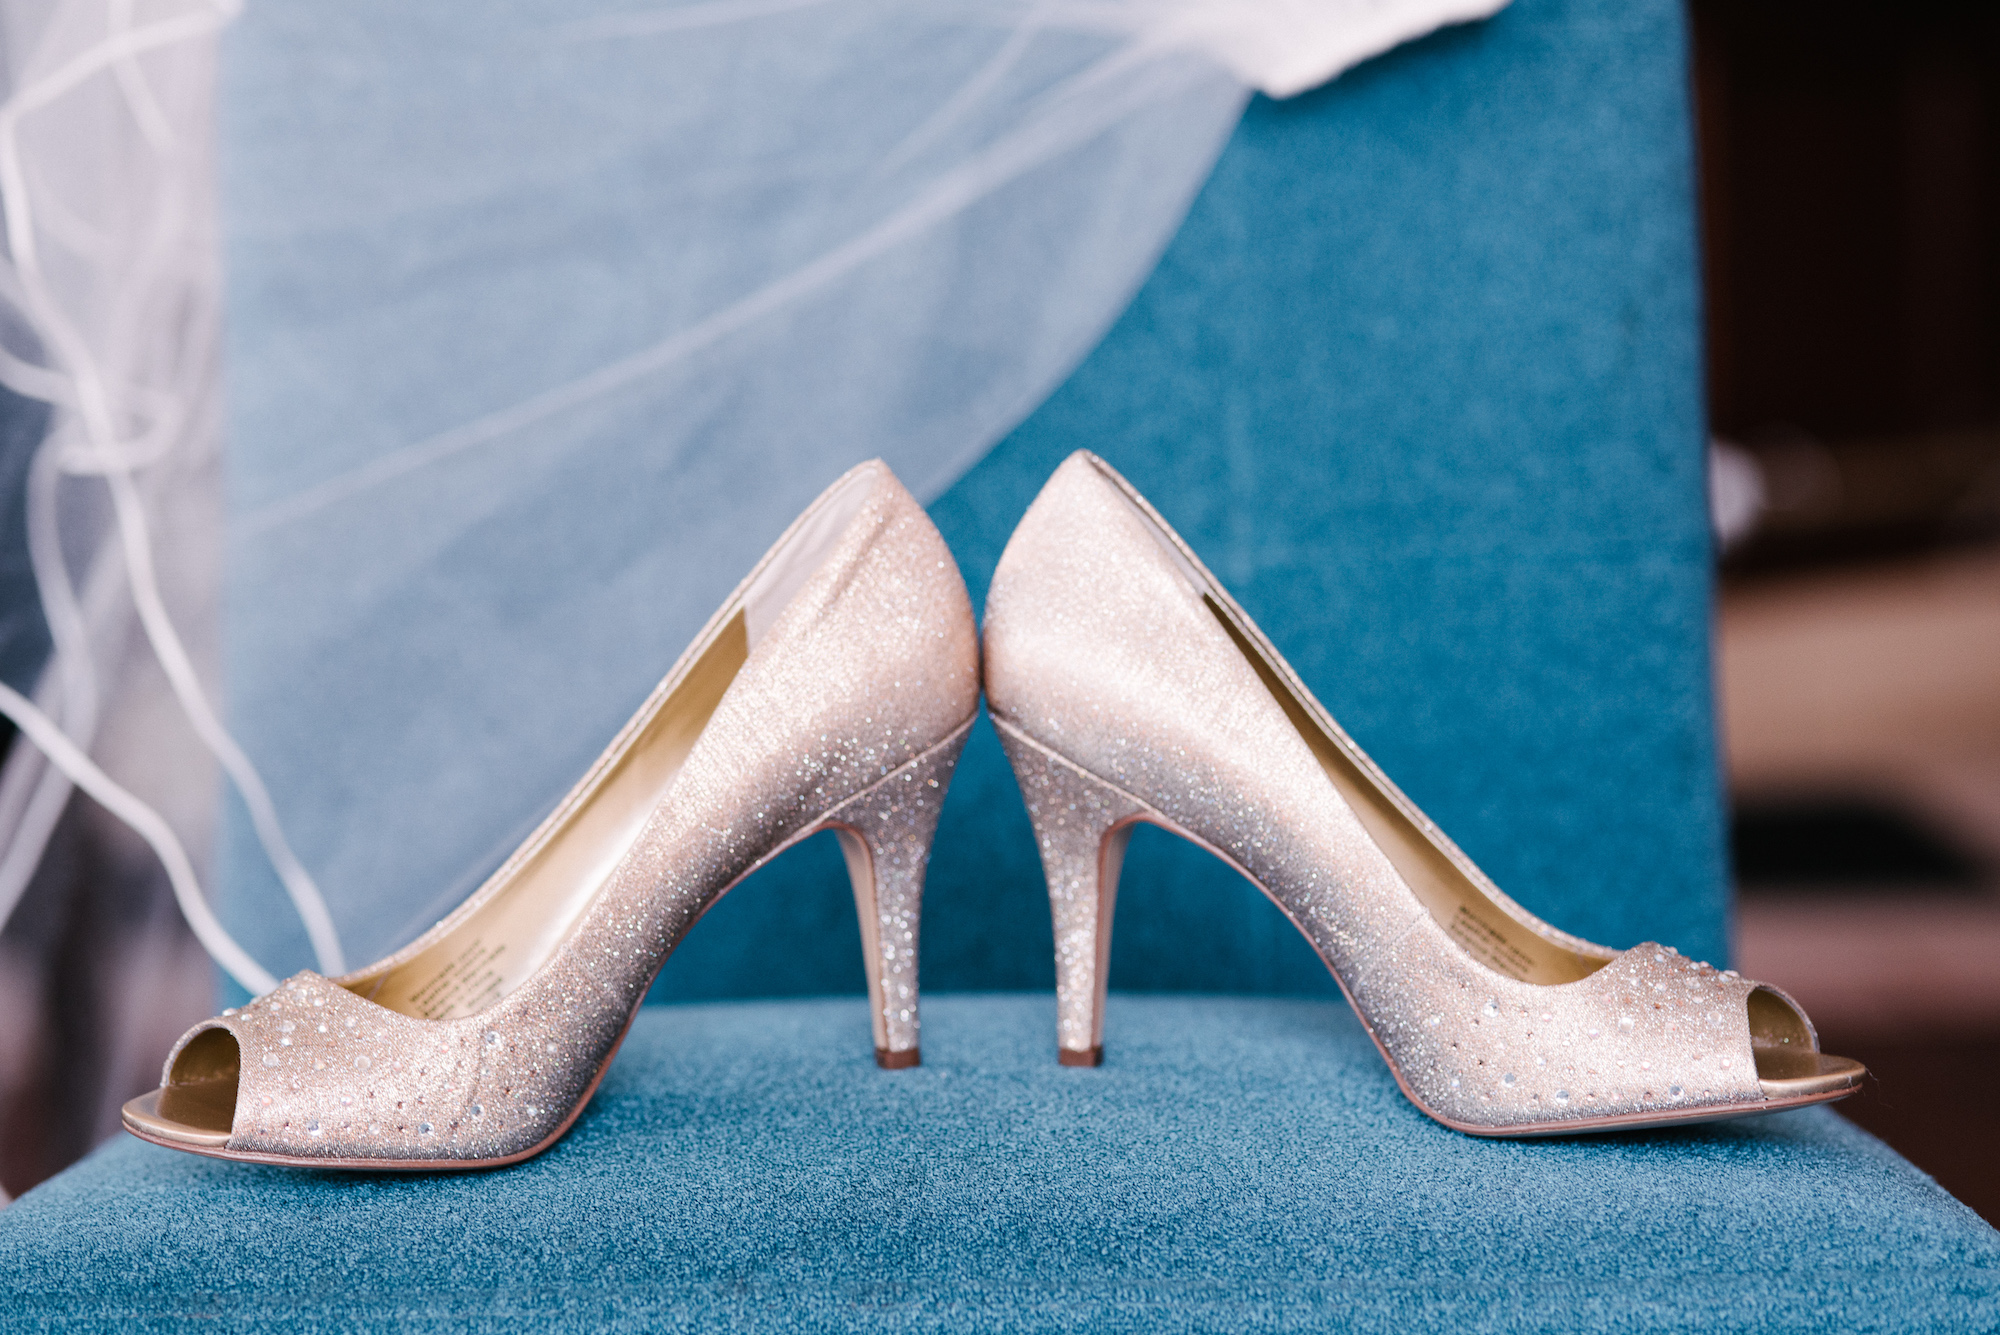 Mike + Alma   Dillinger Studios Minnesota wedding photographer   details shot with peep toe wedding shoes   Sixpence Events & Planning wedding planner